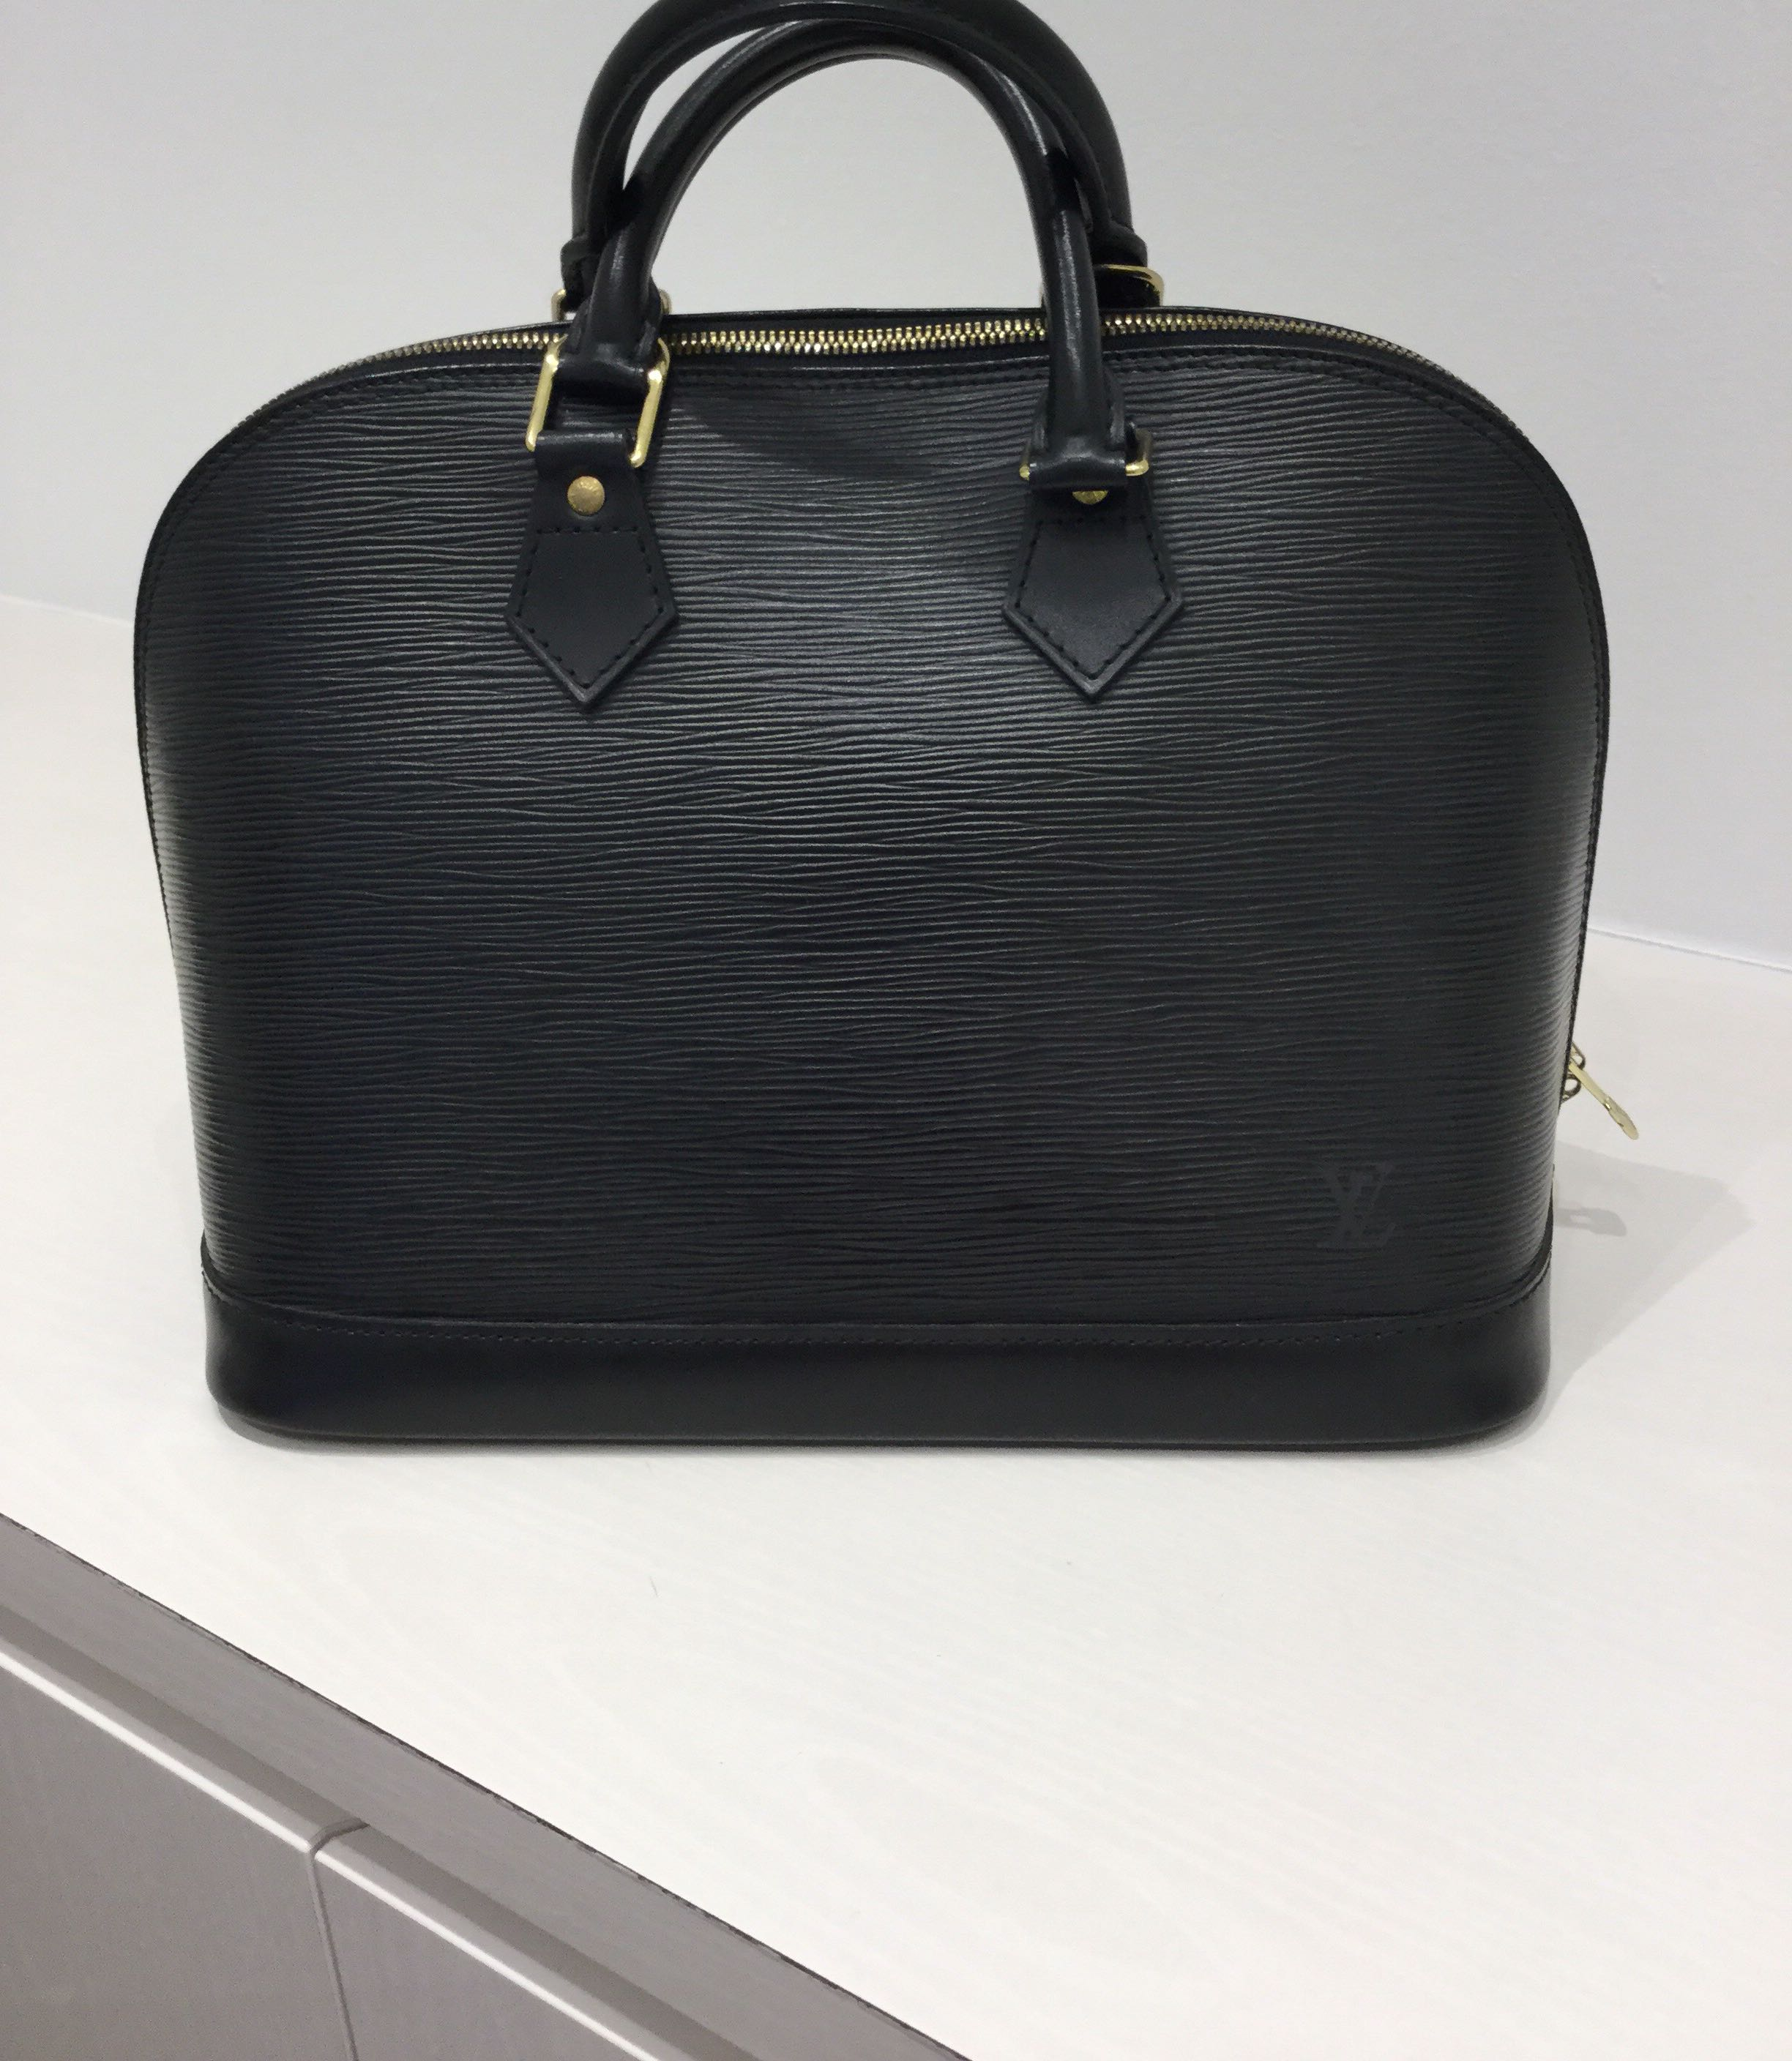 4676b33ca8b5 Louis Vuitton Alma Epi Leather PM